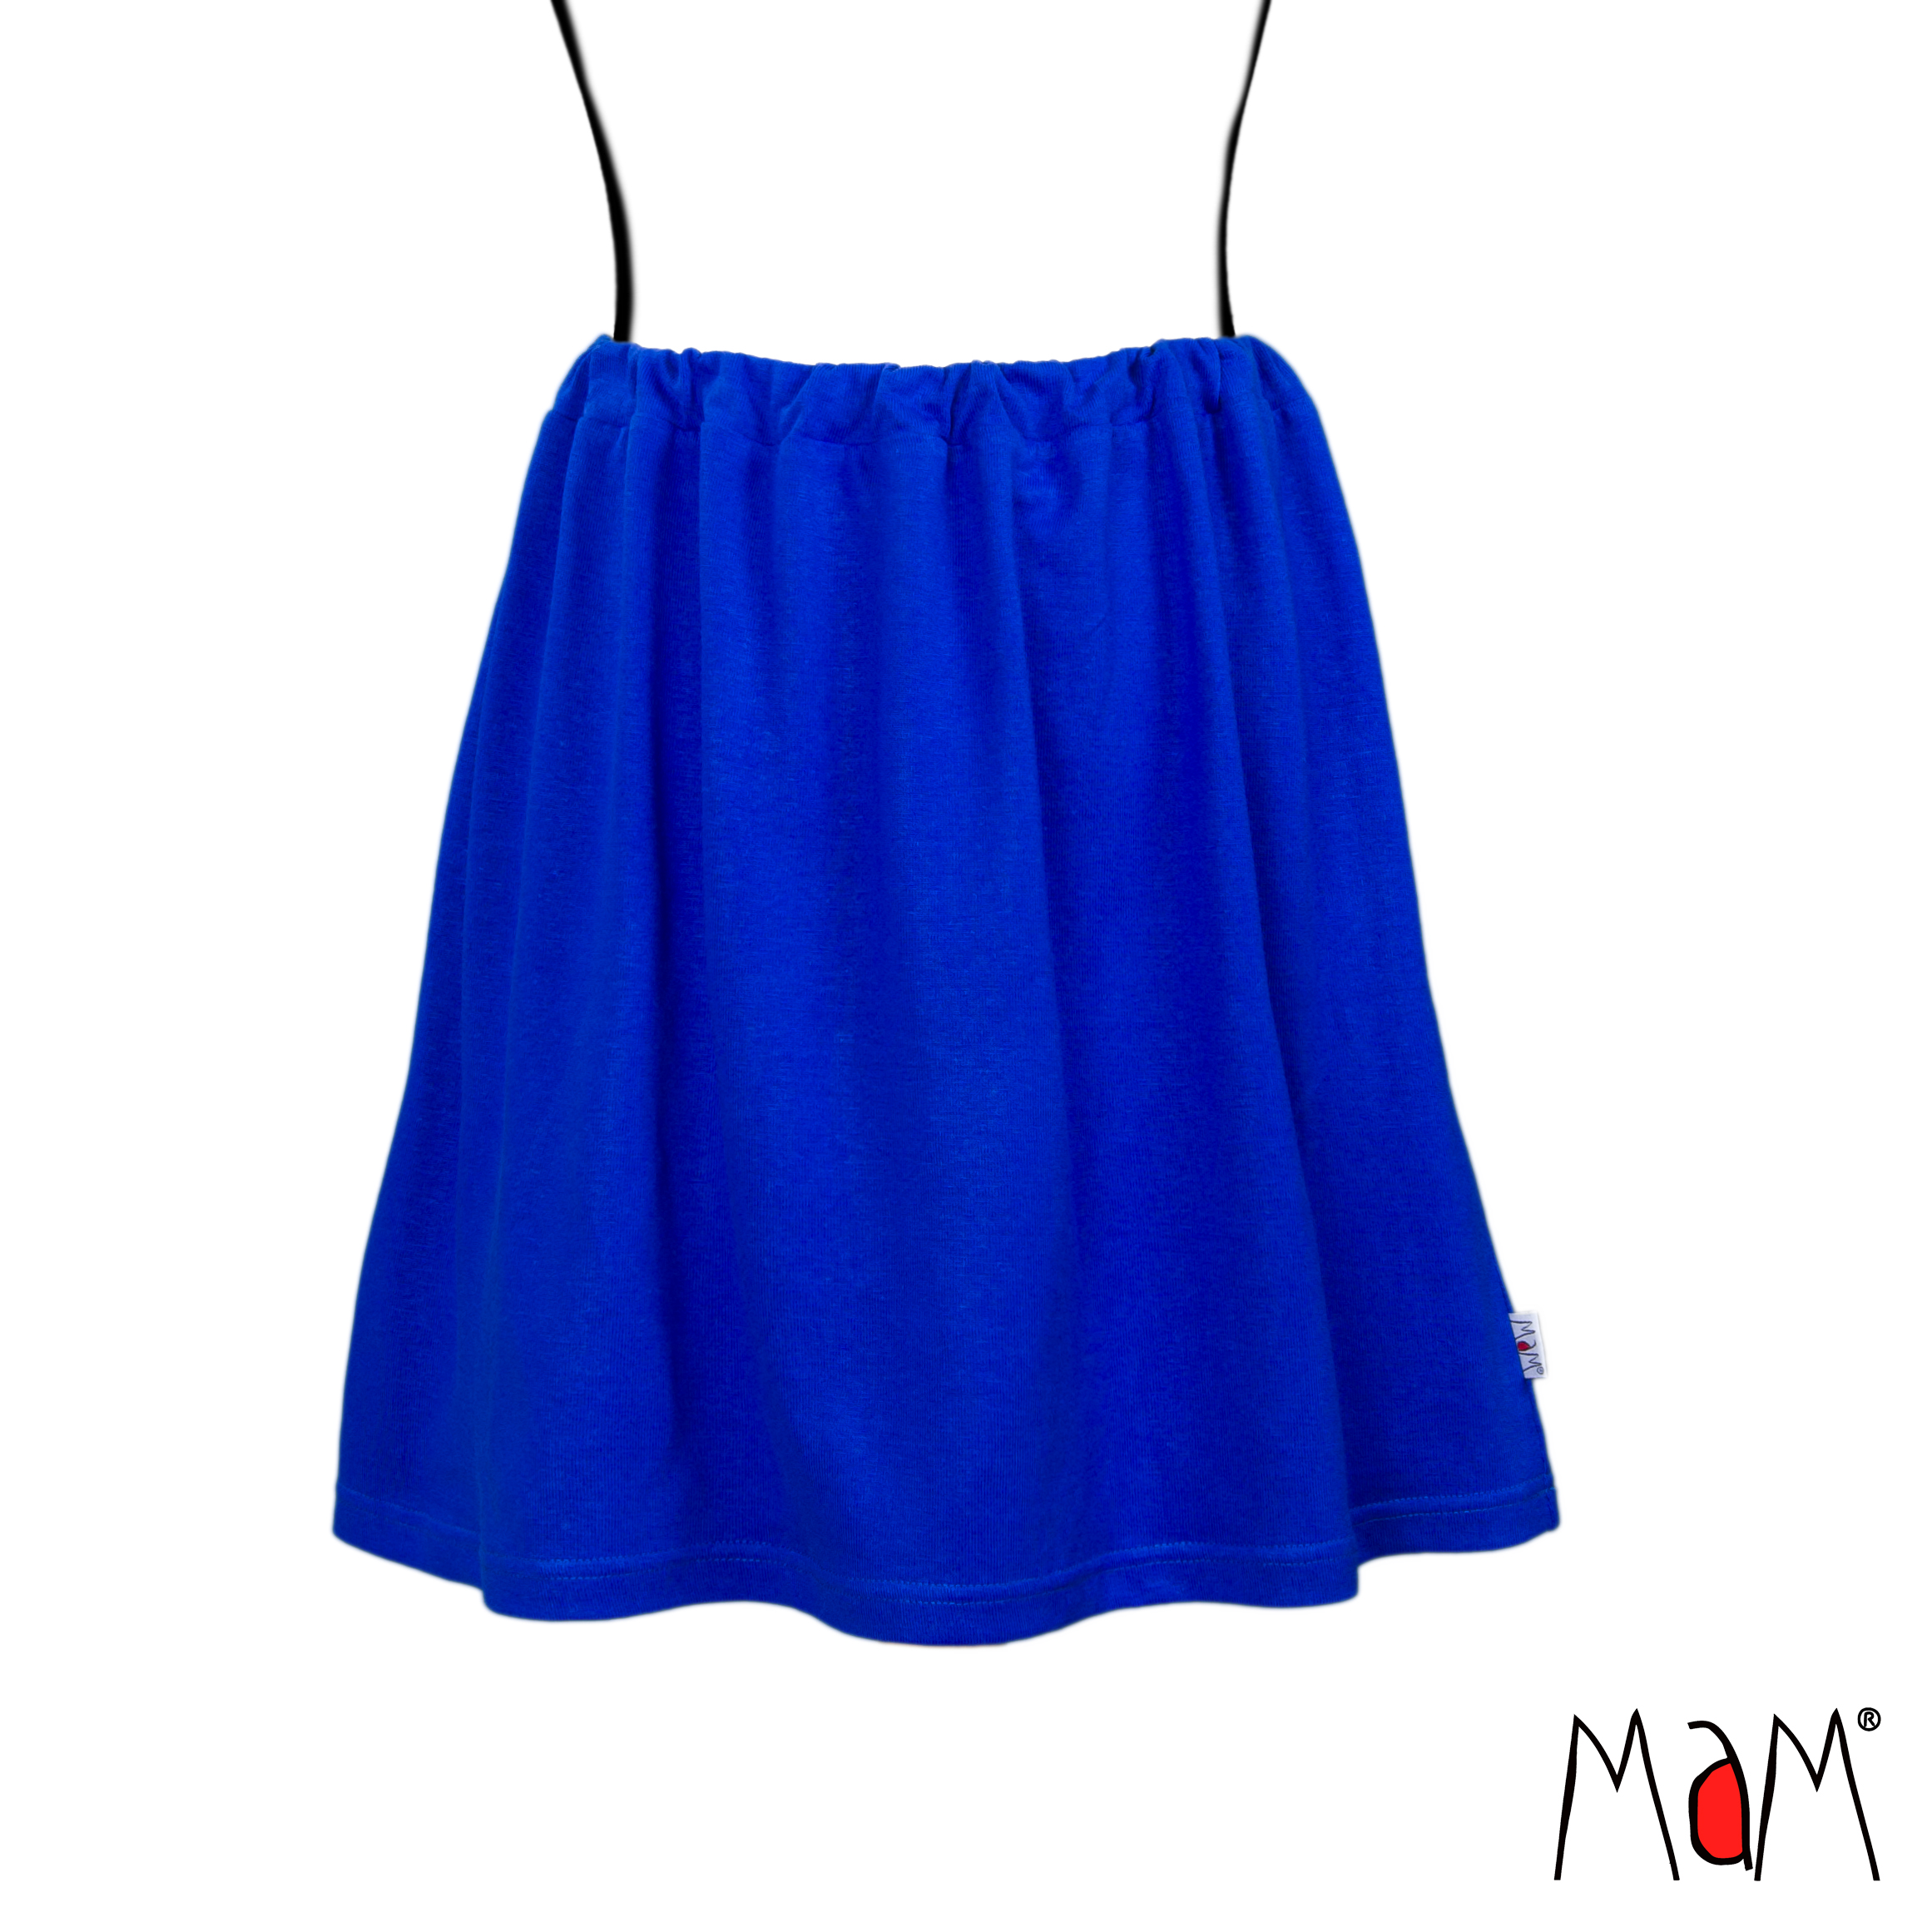 MaM ECO Hempies Ella Skirt